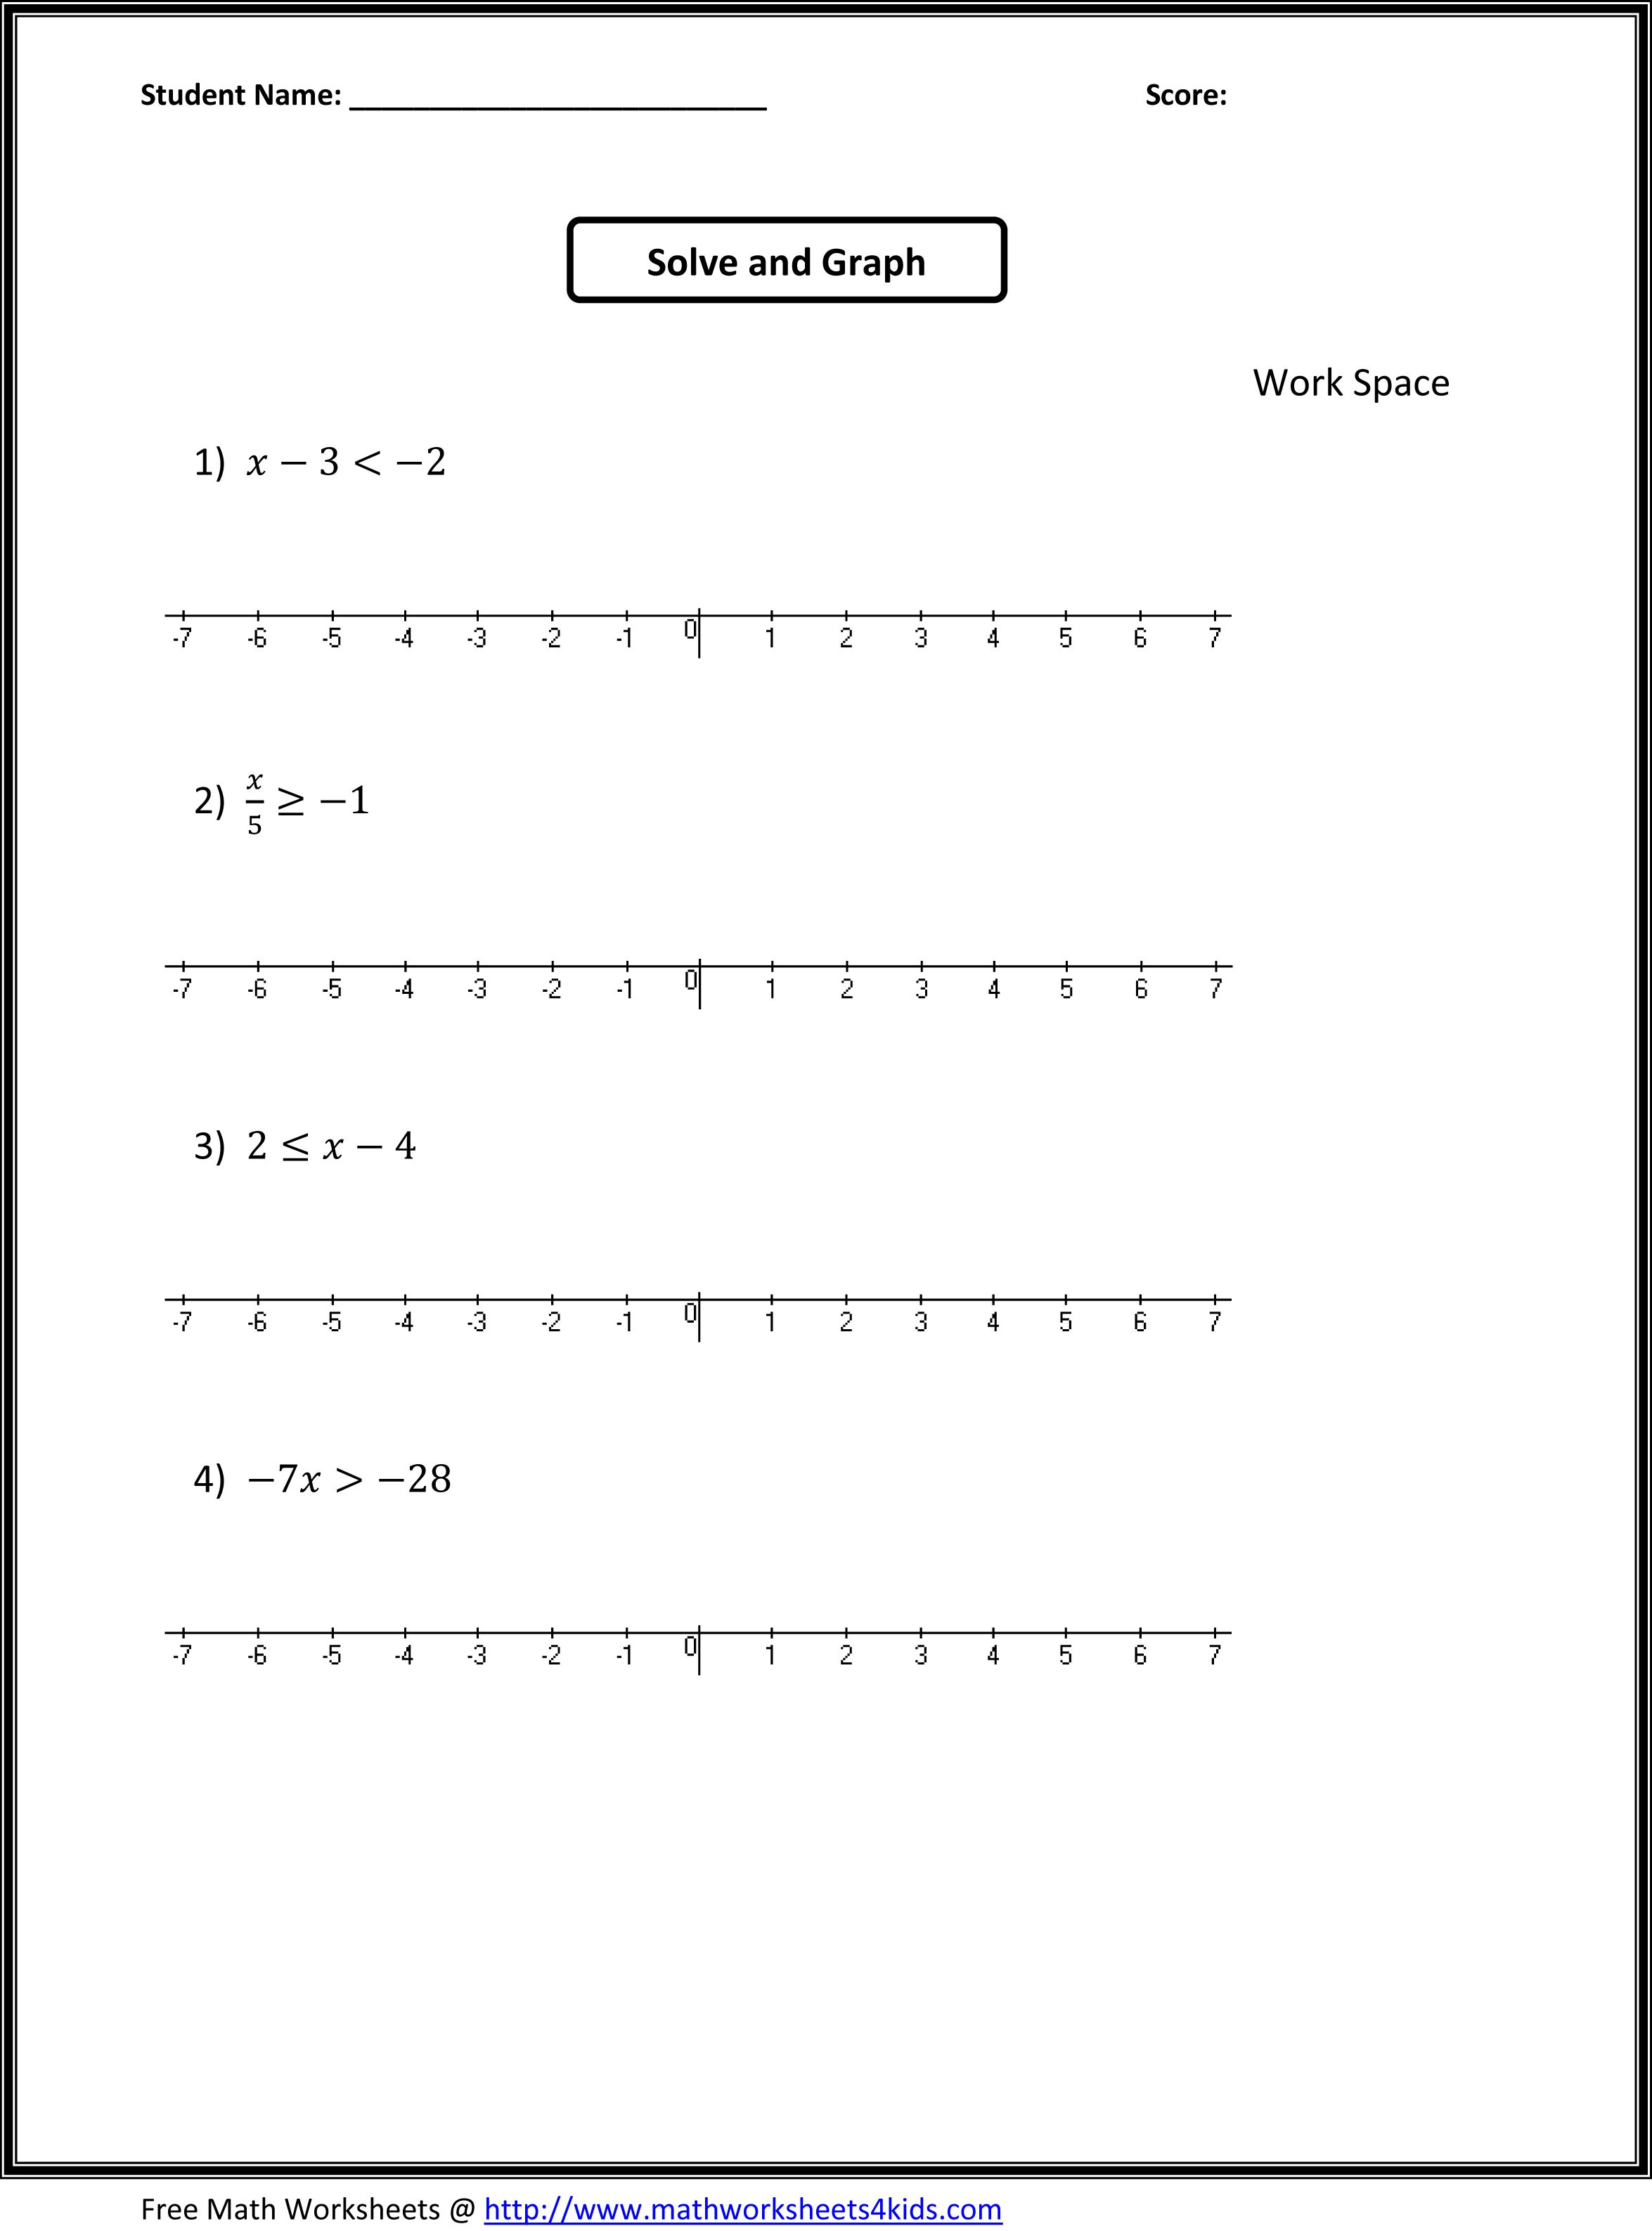 worksheet Inequalities Word Problems Worksheet solving word problems in algebra is easy if you know the key steps seventh grade math worksheets contain ratio integers fractions decimals two step equations inequalities area circumference